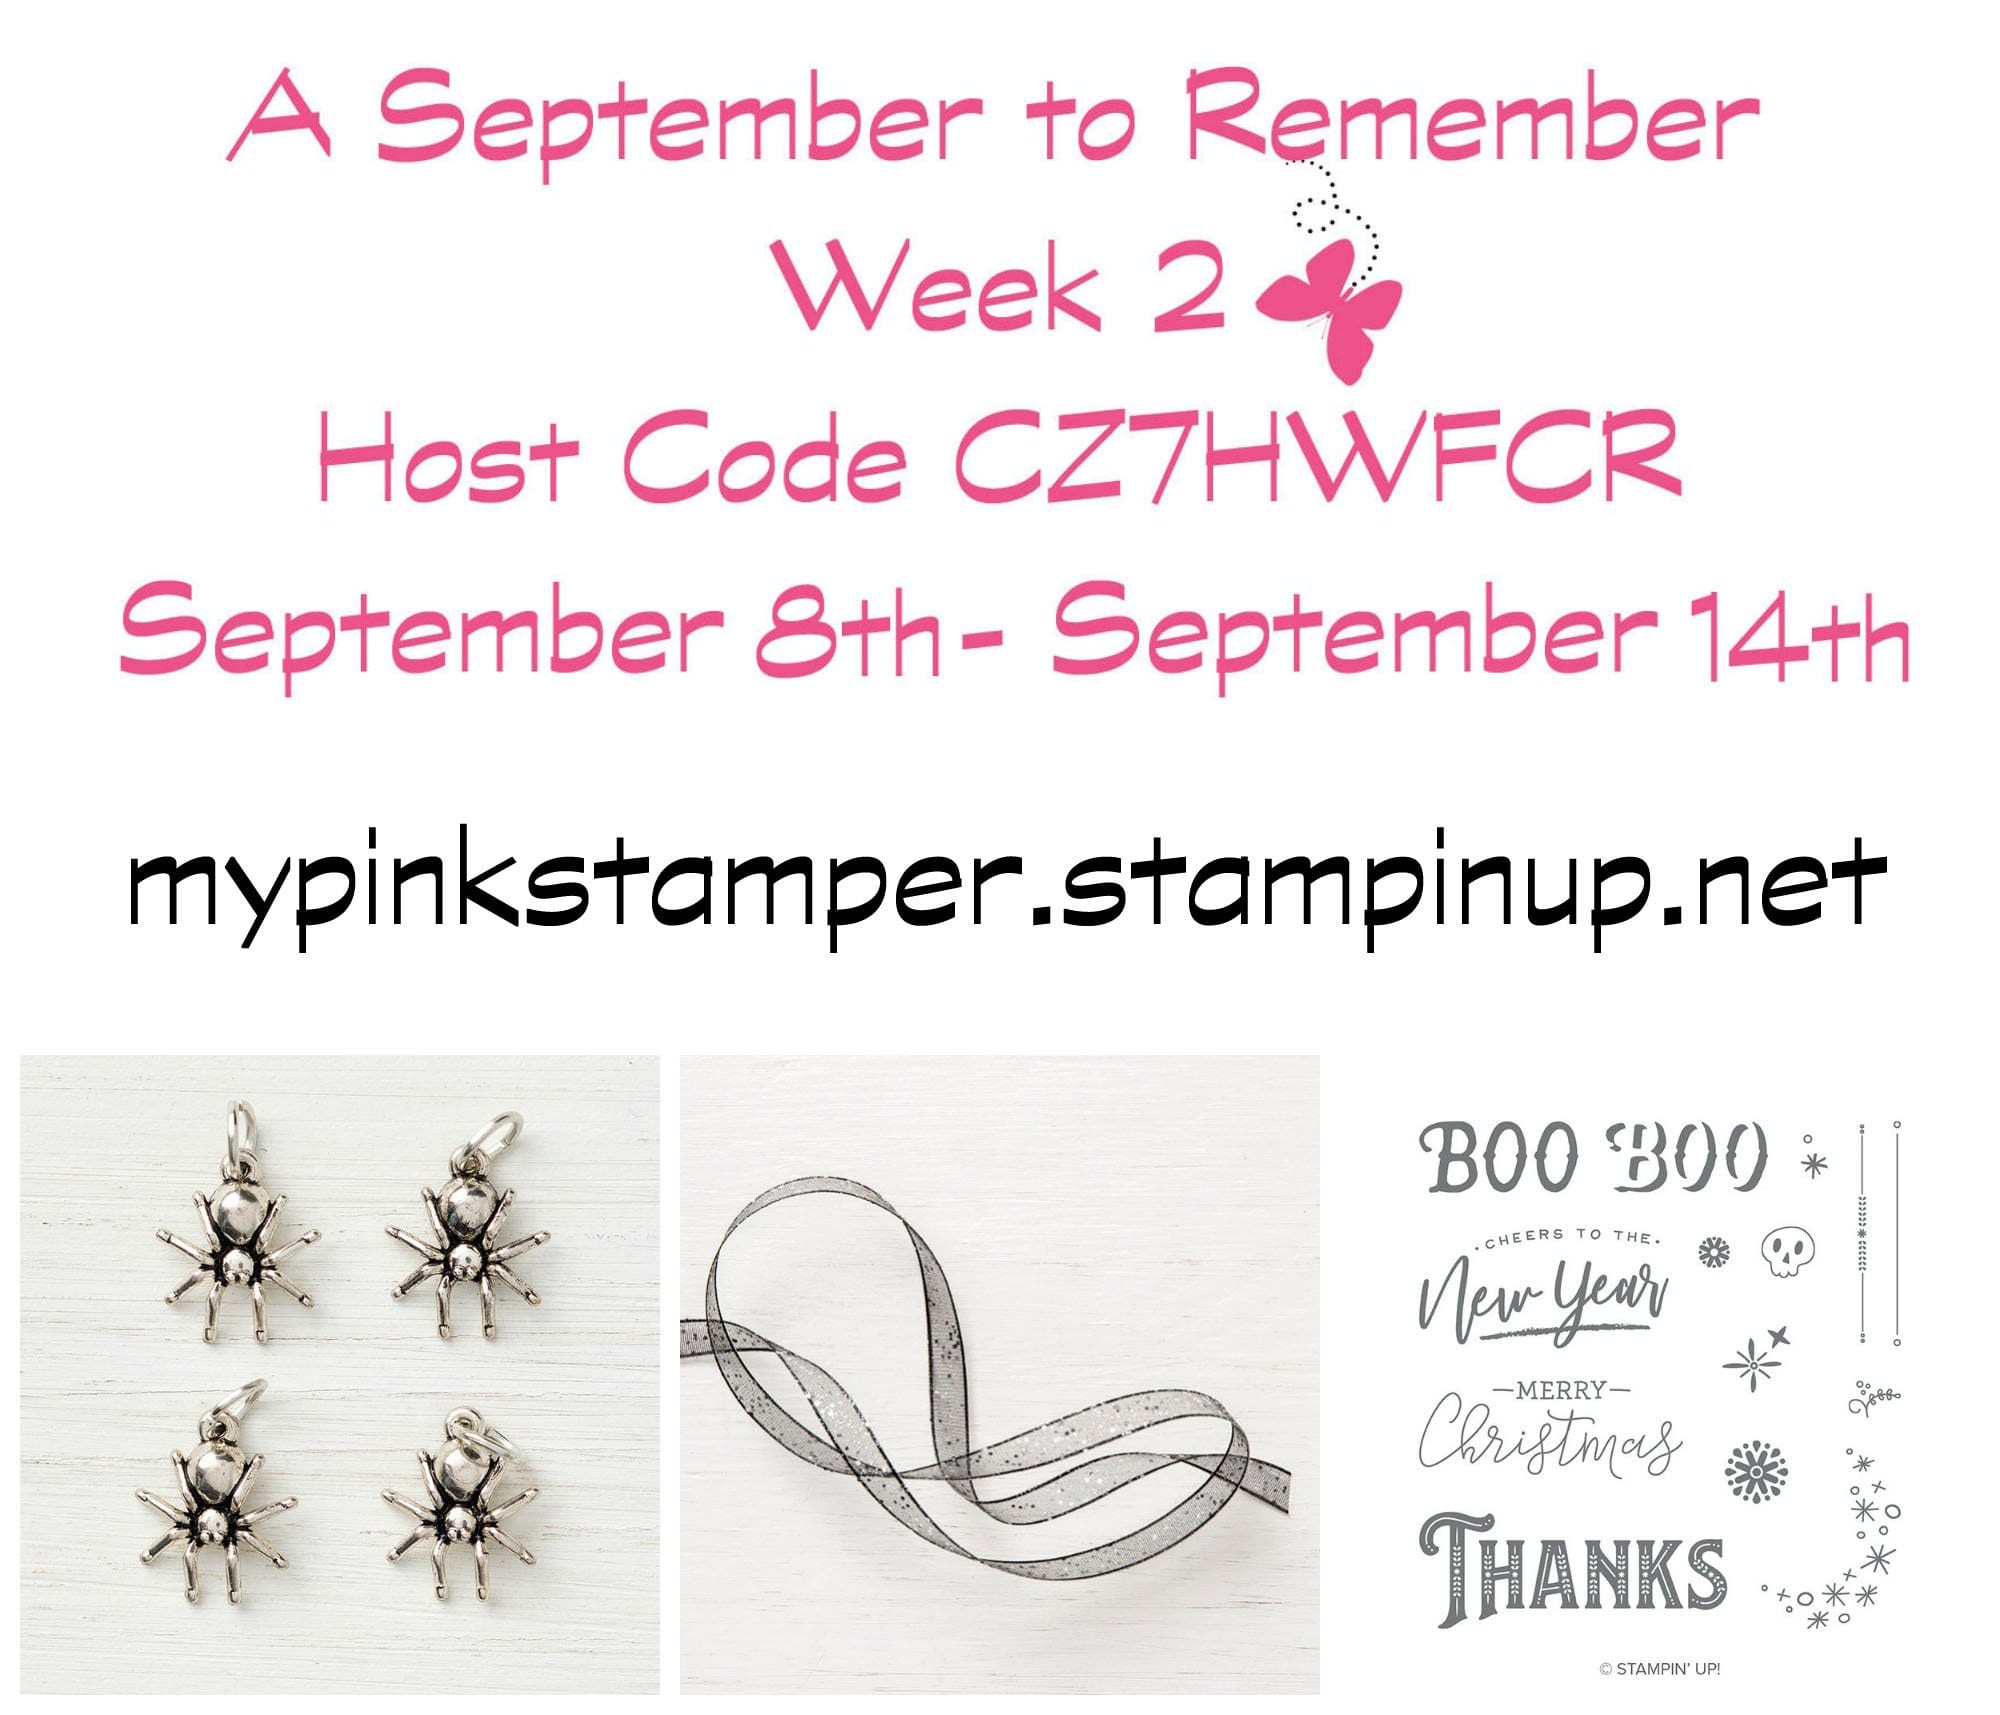 Week 2 of A September to Remember & My Pink Candy Giveaway & Winner!